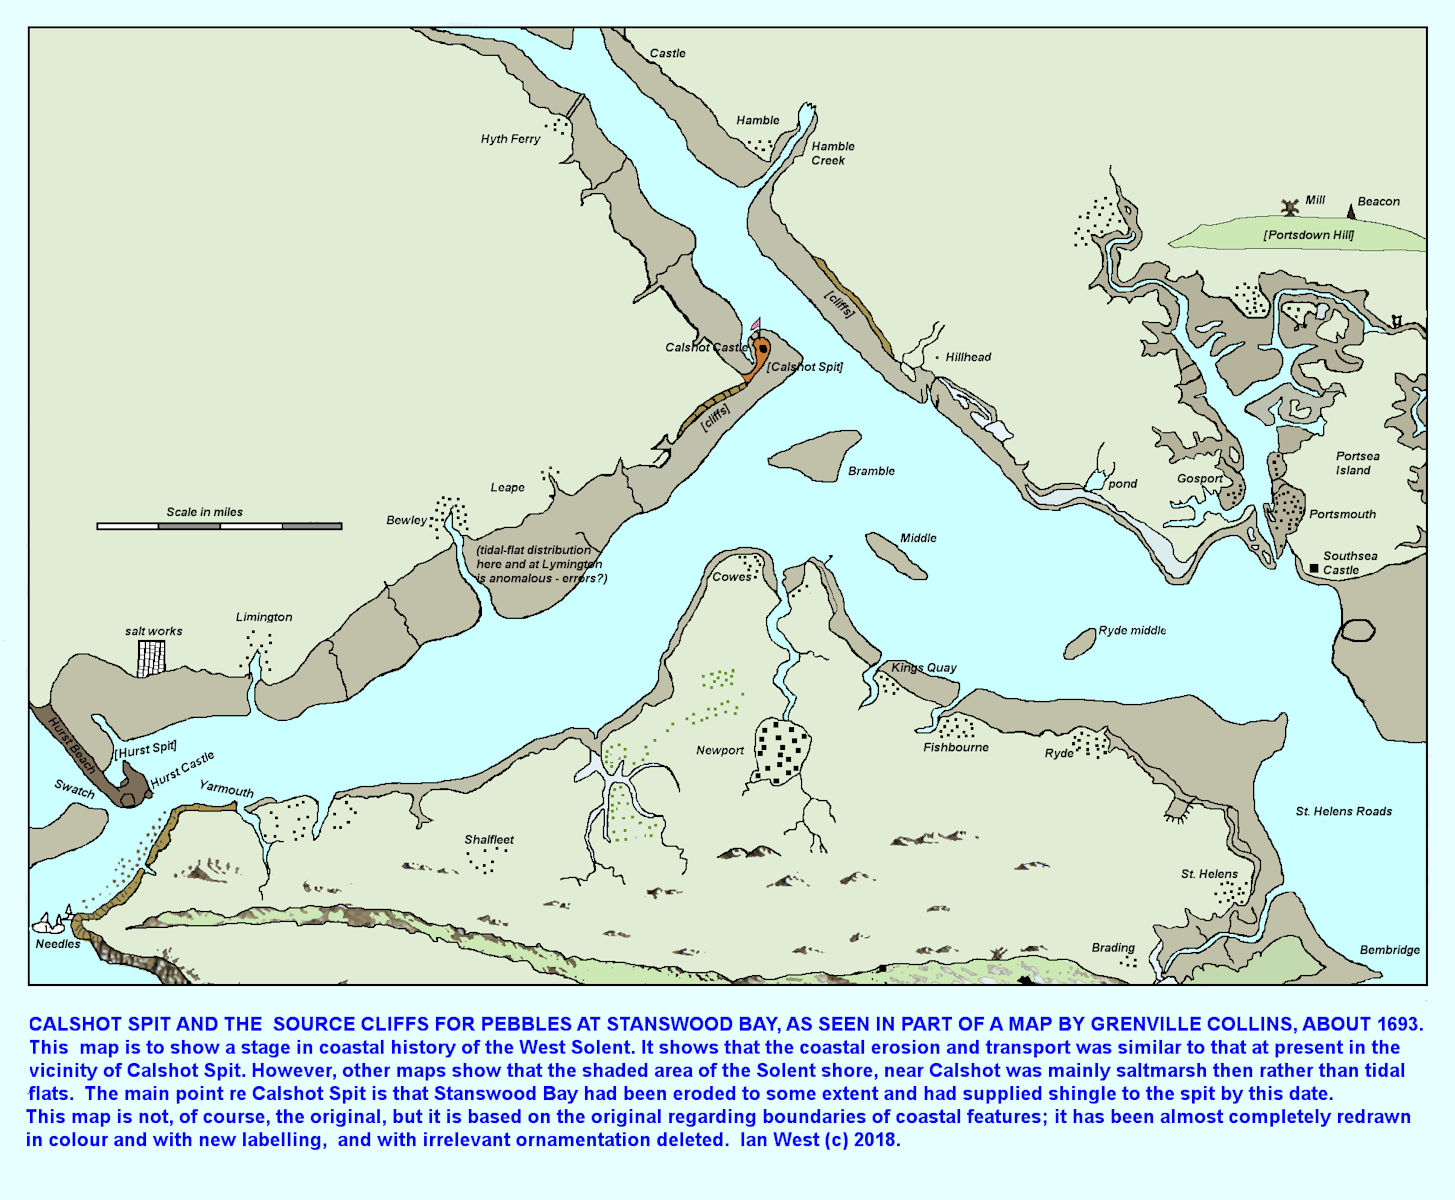 Grenville Collins map of the Solent estuary at about 1693, redrawn, with some simplication, Ian West 2018